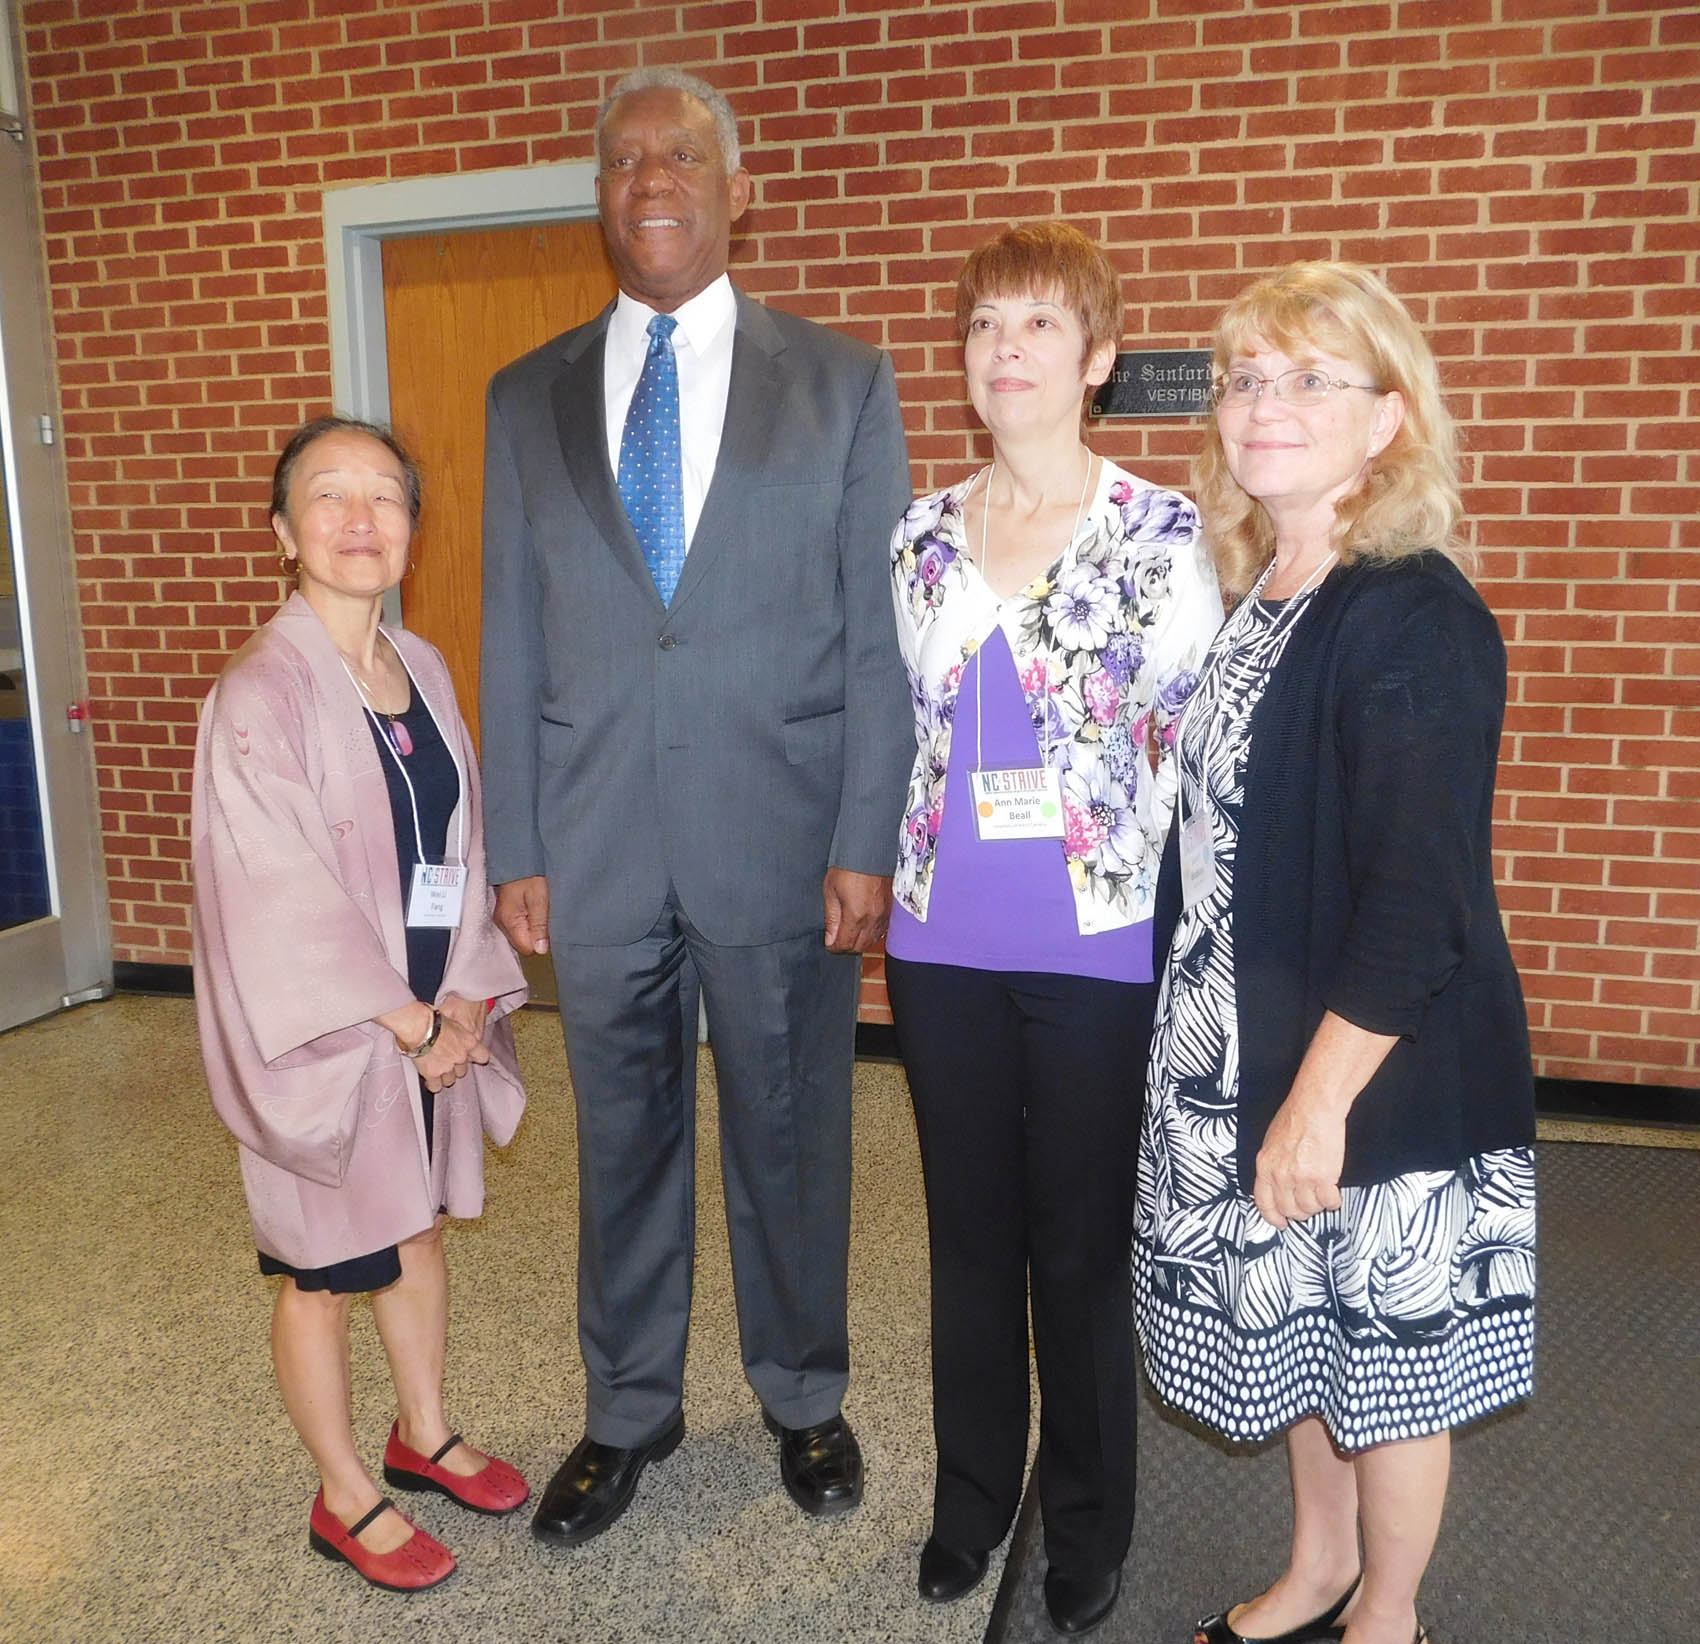 Click to enlarge,  NC STRIVE Conference Planning Committee leaders visit with Secretary Cornell A. Wilson, Jr. (second from left), N.C. Department of Military and Veterans Affairs, Major General, USMC (Ret.). Pictured are, left to right:  Co-Chair Dr. Wei Li Fang of the Governor's Institute on Substance Abuse, Sec. Wilson, Co-Chair Ann Marie Beall of the University of North Carolina at Wilmington, and Chair Susan Watkins of the U.S. Department of Veterans Affairs.